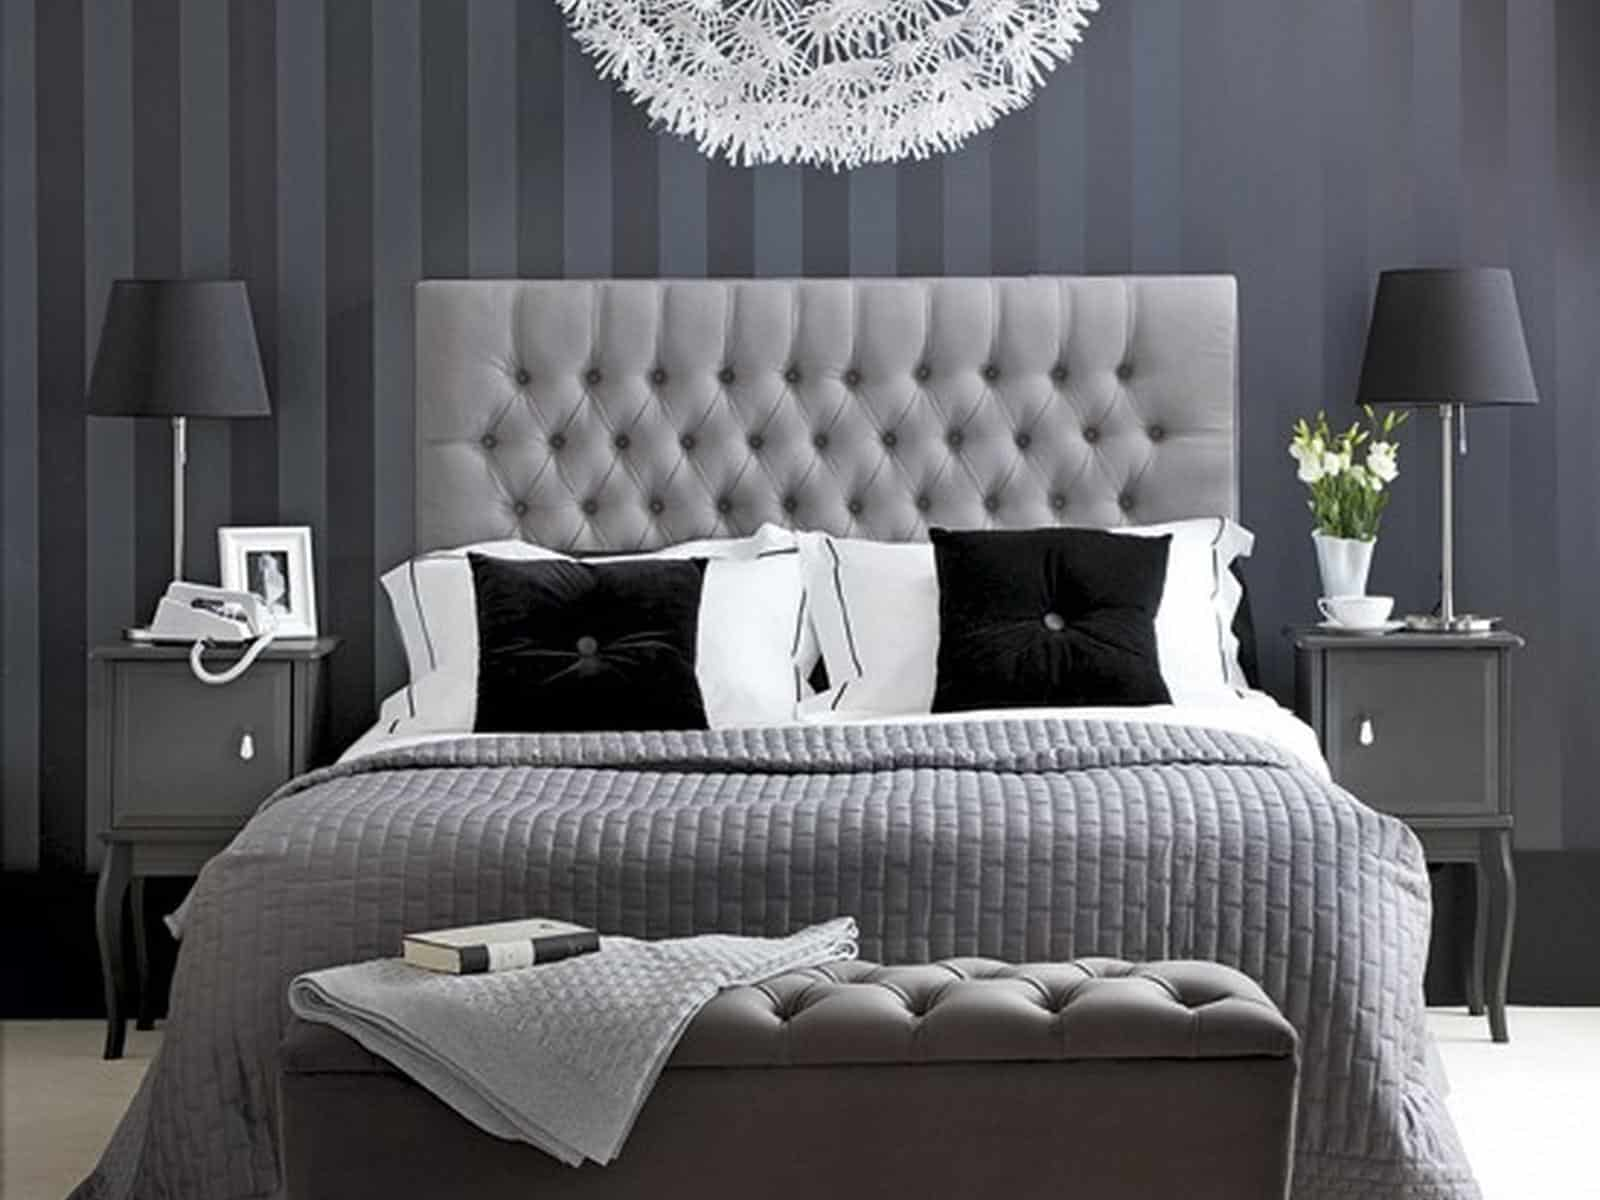 Black And White Bedroom Ideas Chic Black And White Bedrooms That Are All The Rave